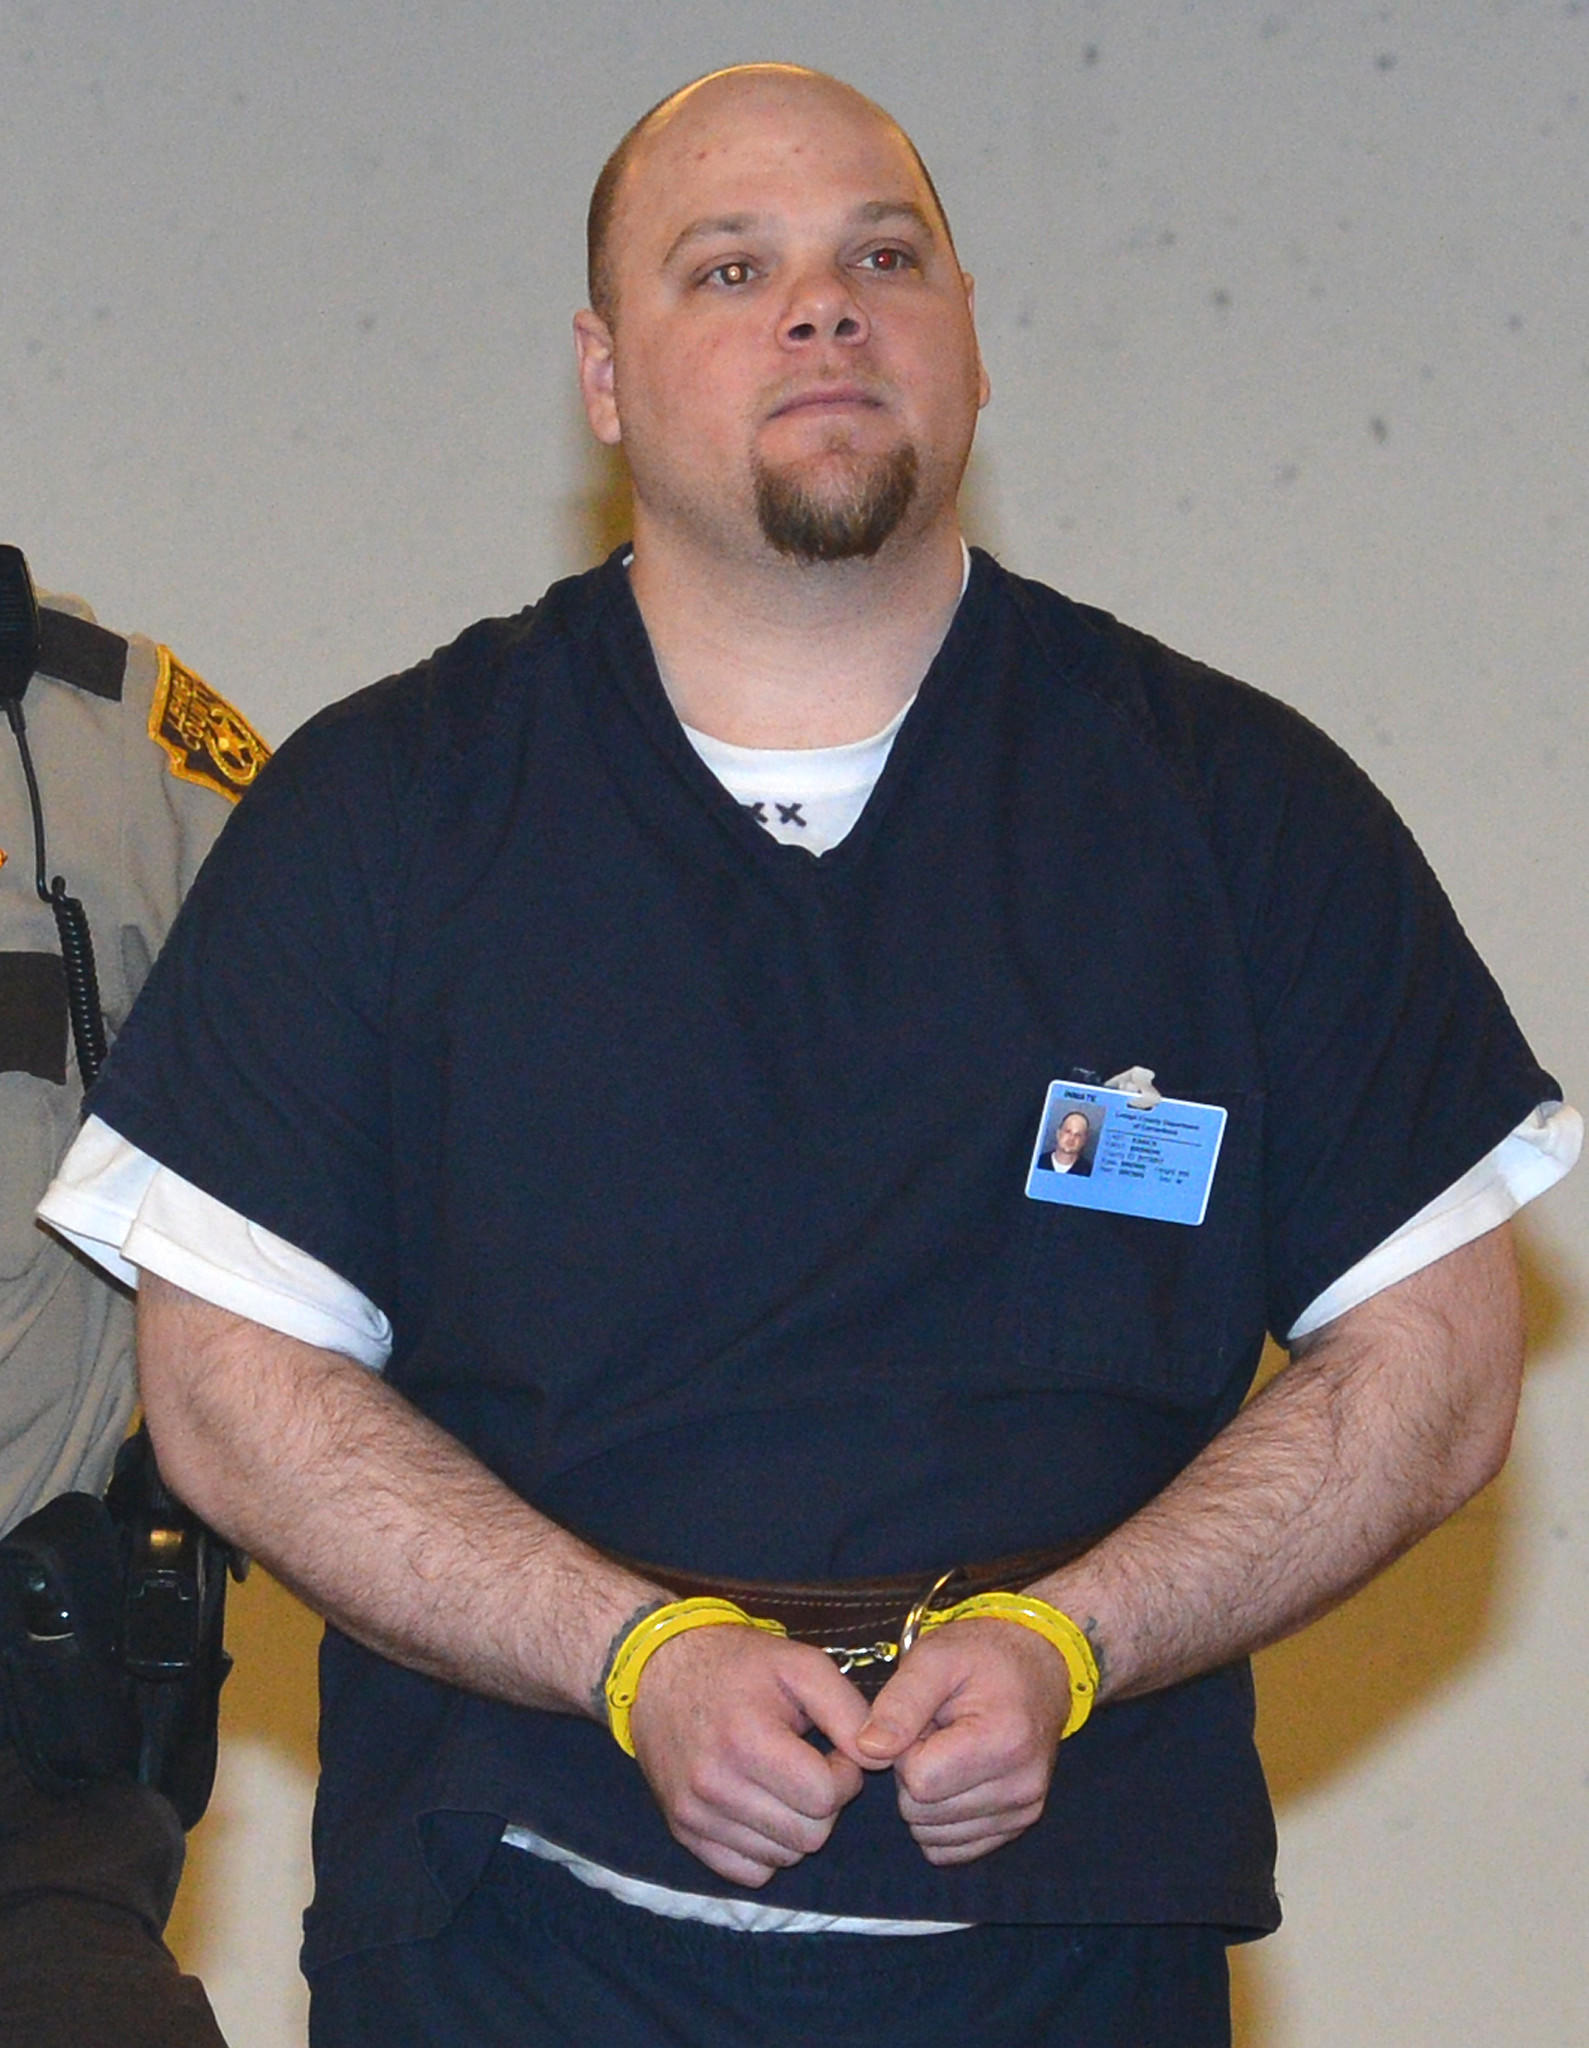 Brandin Lee Kasick, 29, on Tuesday pleaded no contest in the stabbing death an elderly Alburtis woman and her mentally challenged daughter during a home-invasion robbery in March 2011. Kasick will serve a life sentence with no chance of parole.